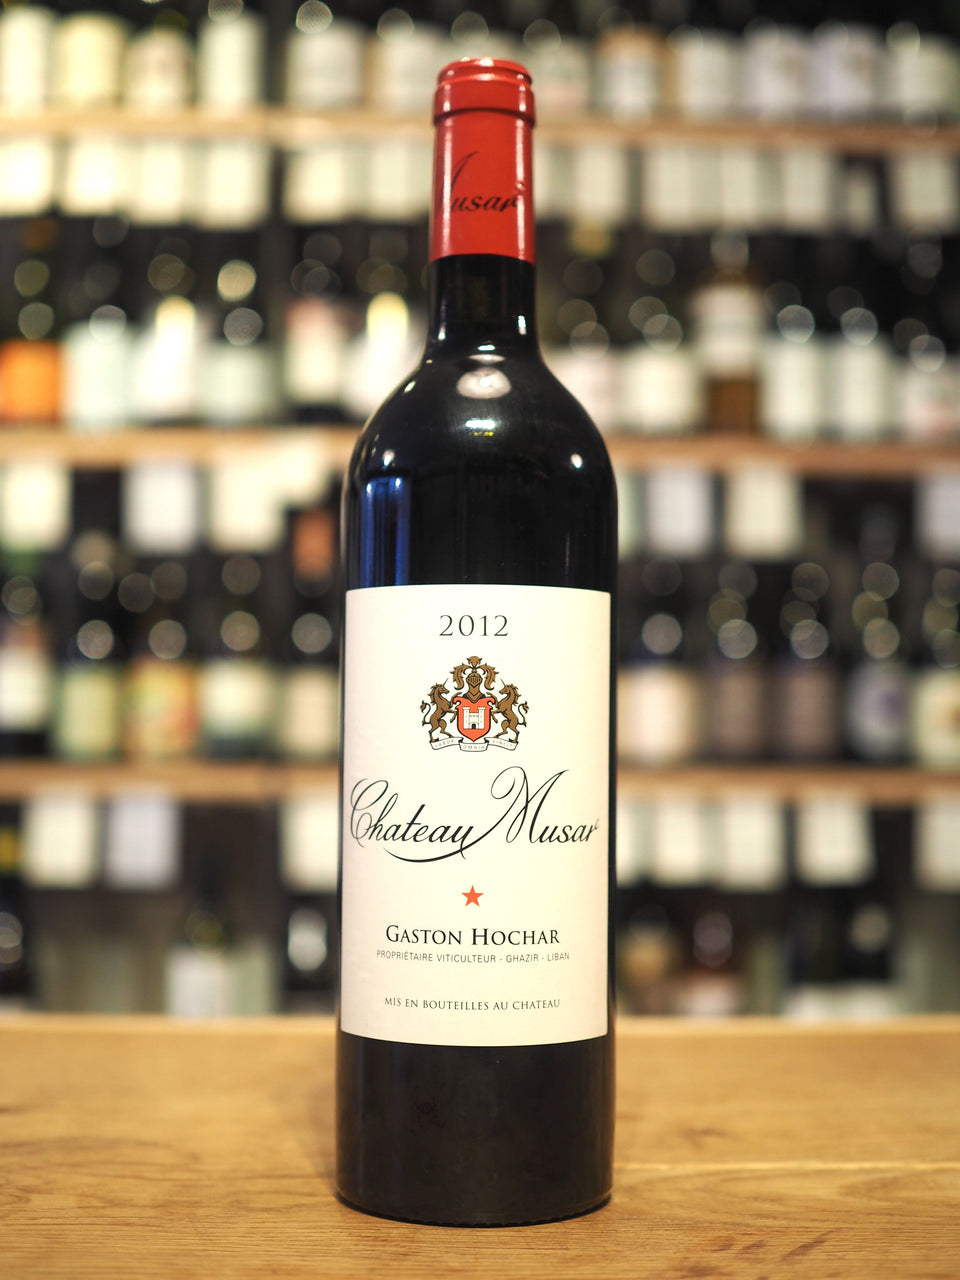 Chateau Musar 2013